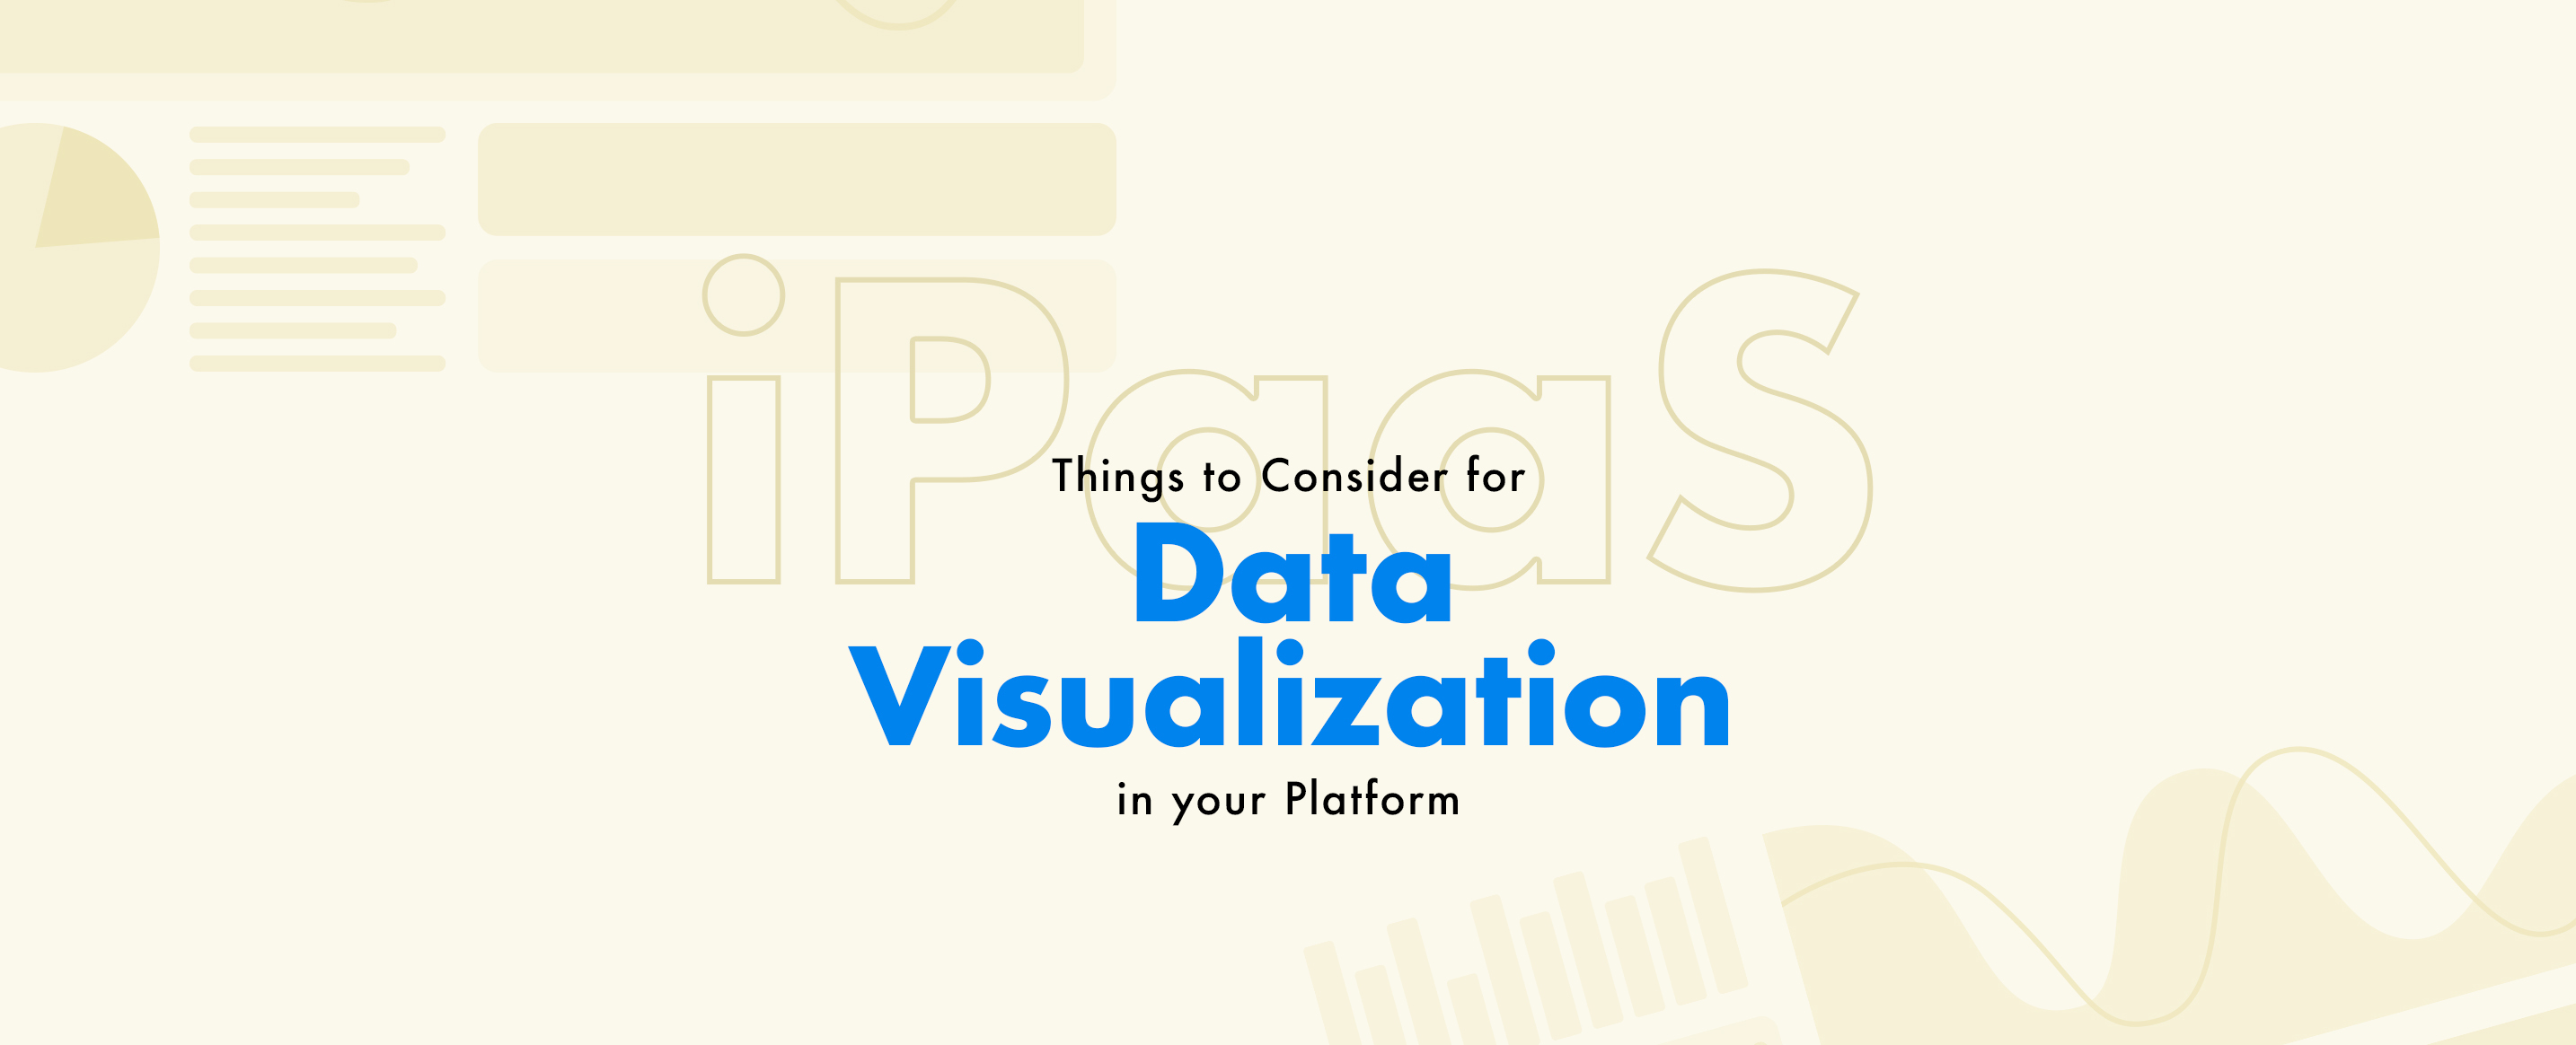 iPaaS: Things to Consider for Data Visualization in your Platform